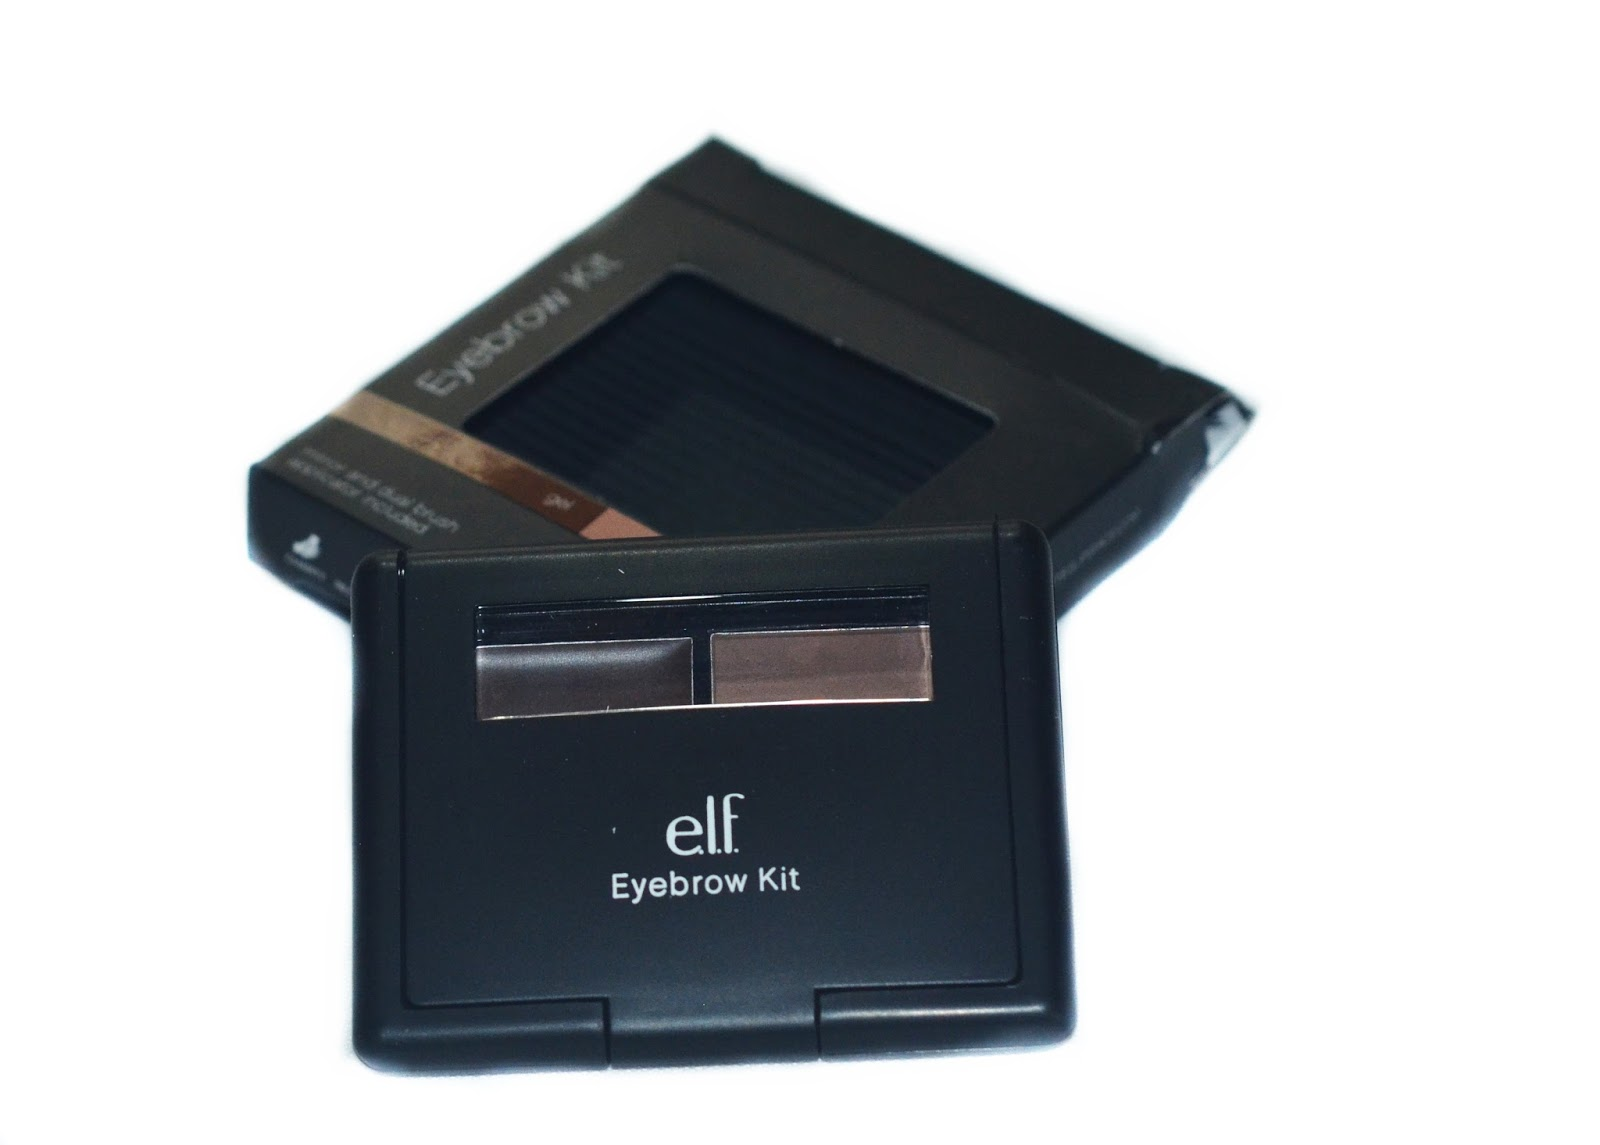 elf studio eyebrow kit review